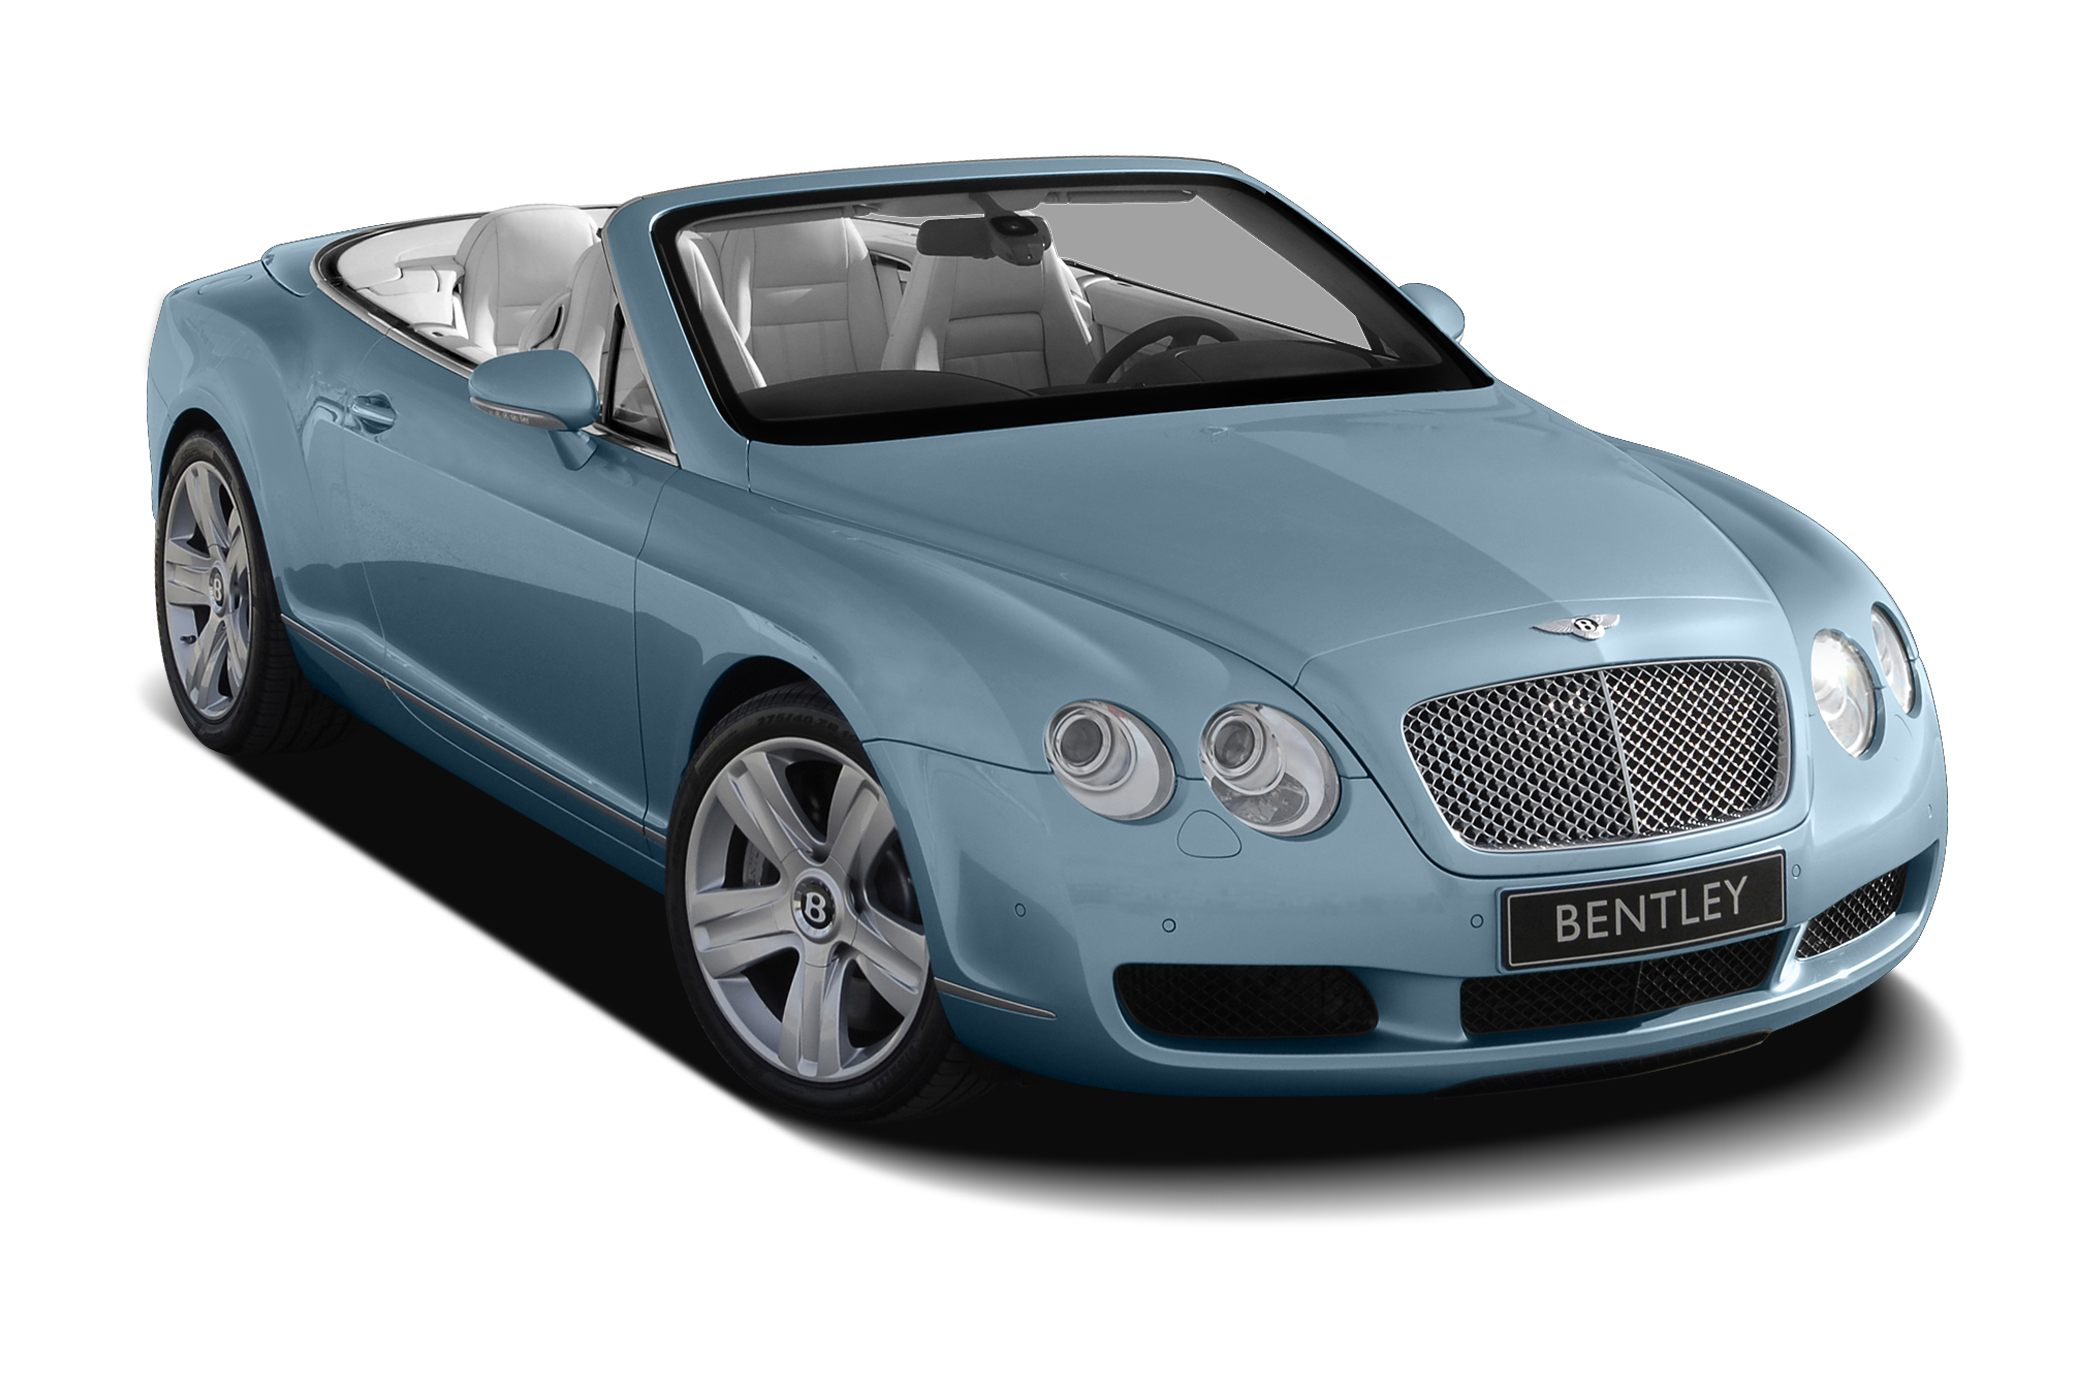 2007 Bentley Continental GTC Convertible for sale in Fort Lauderdale for $89,980 with 37,558 miles